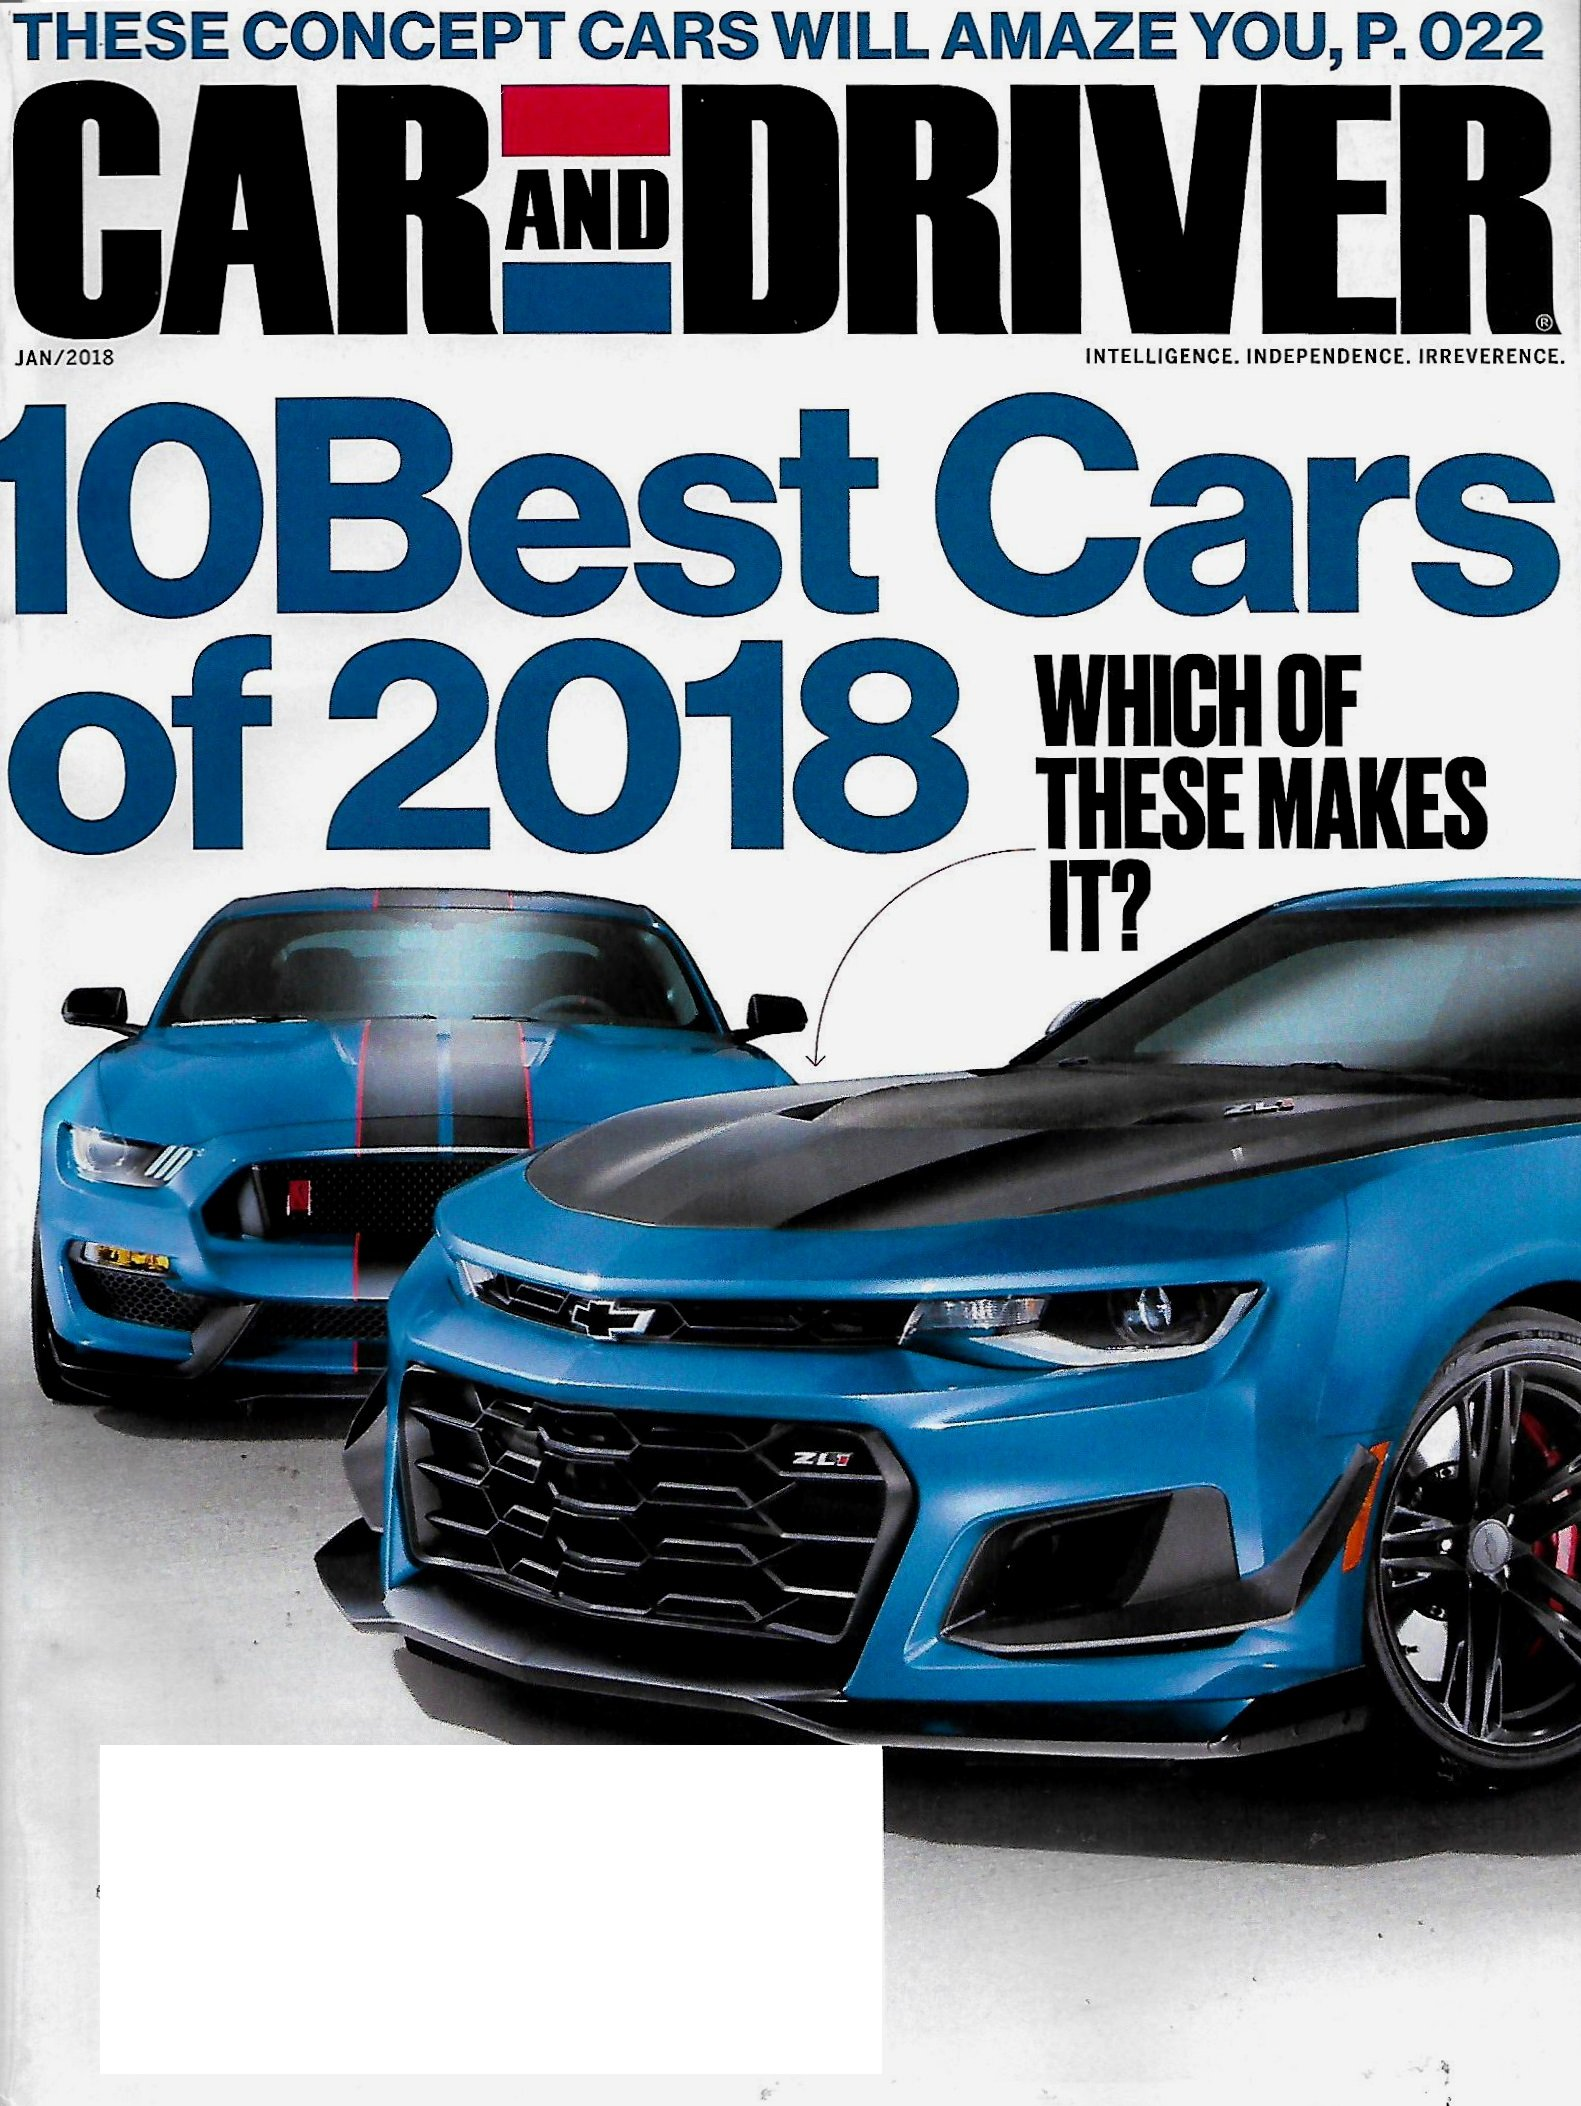 Car And Driver 10 Best >> Car And Driver January 2018 10 Best Cars Of 2018 Amazon Com